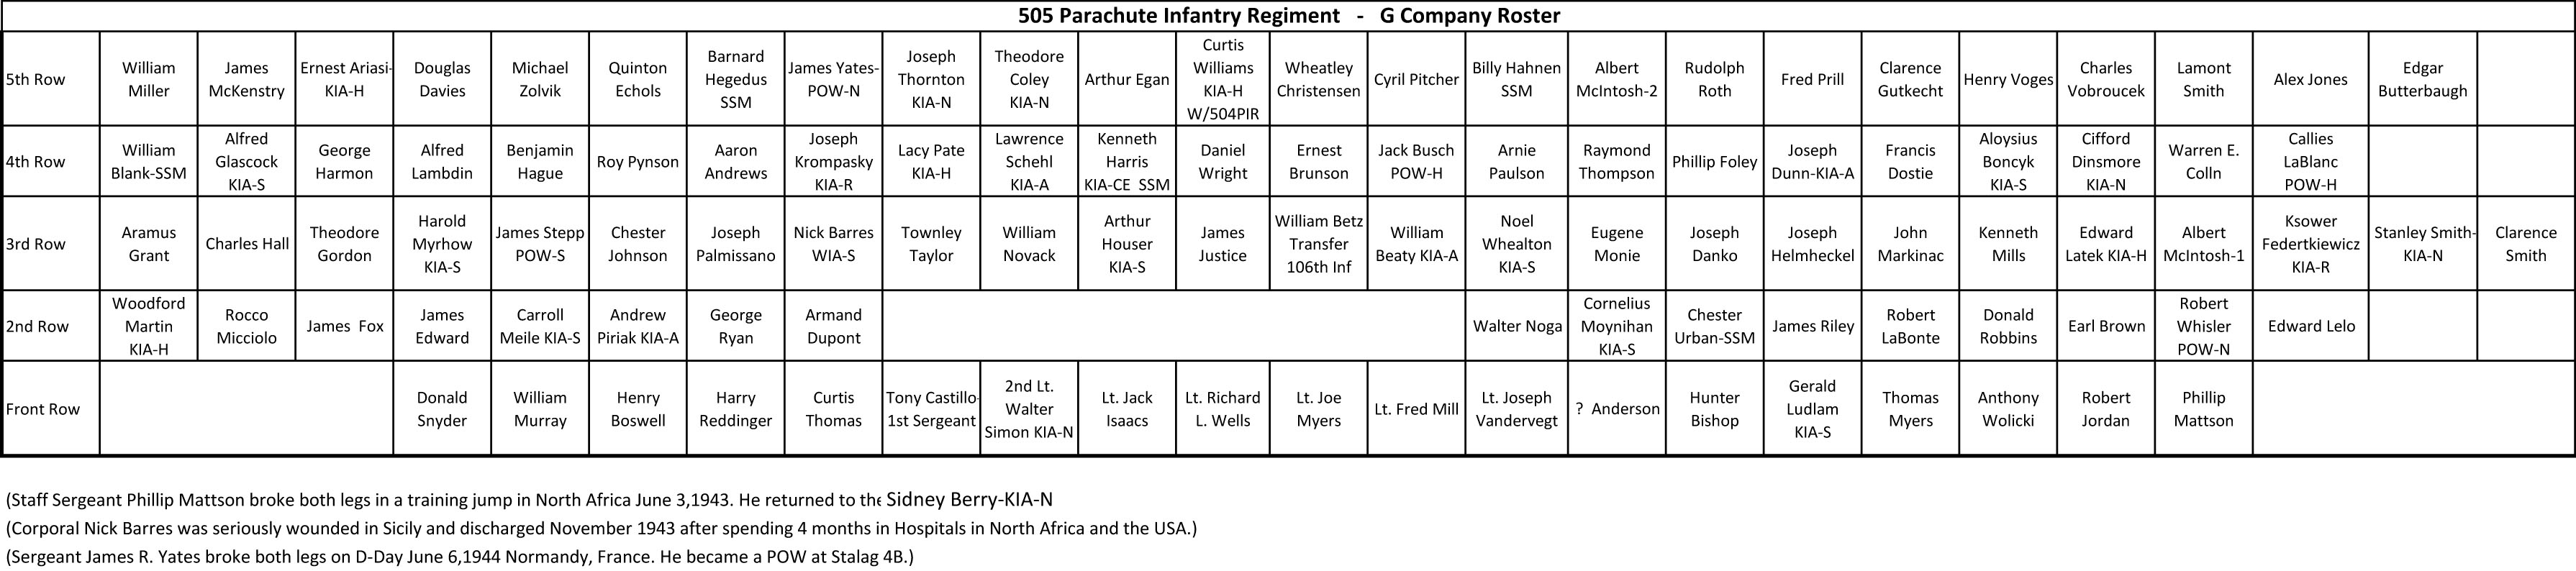 G company roster